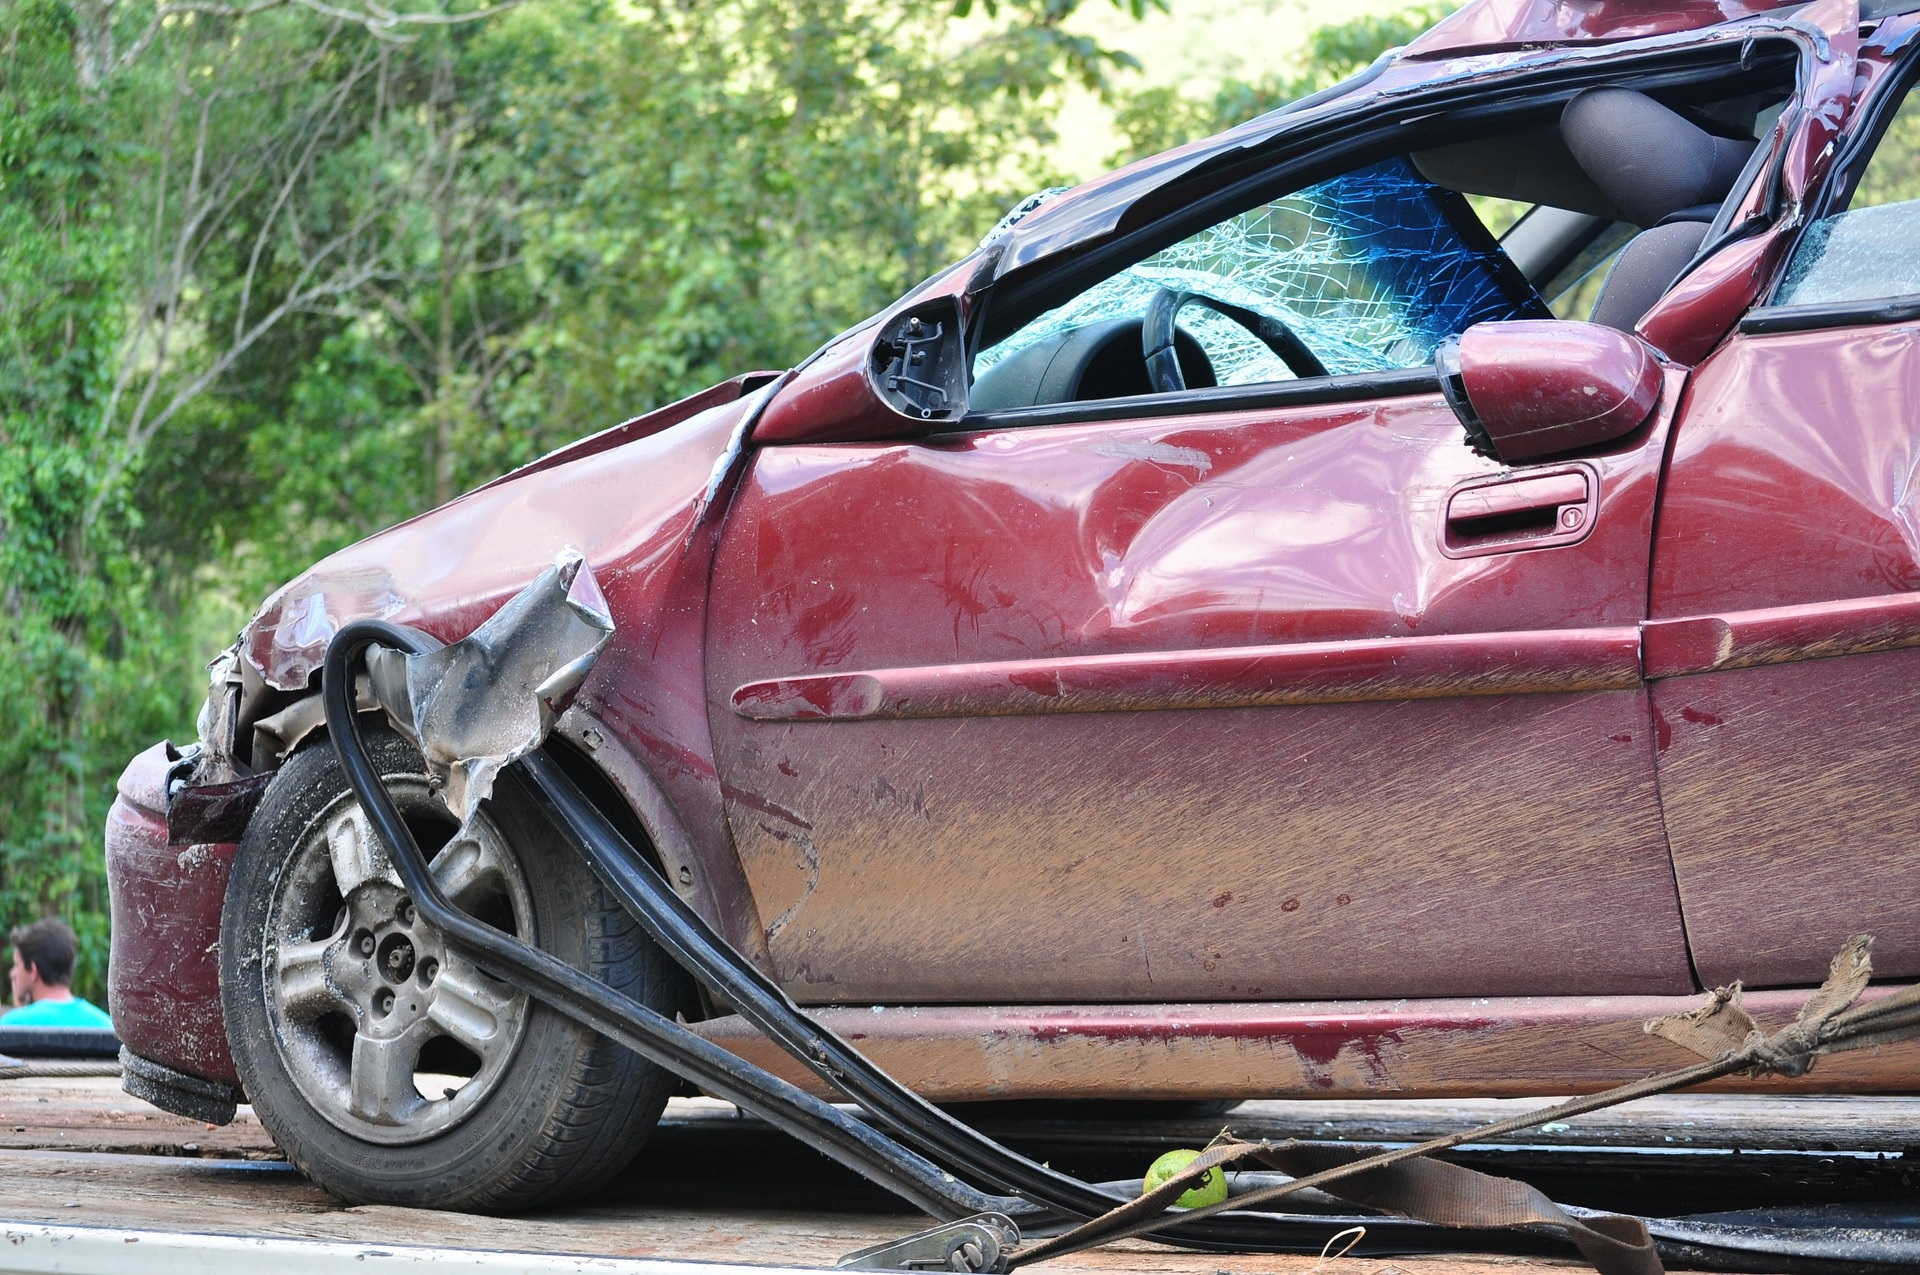 Do I Need a Personal Injury Attorney for My Car Accident Case?